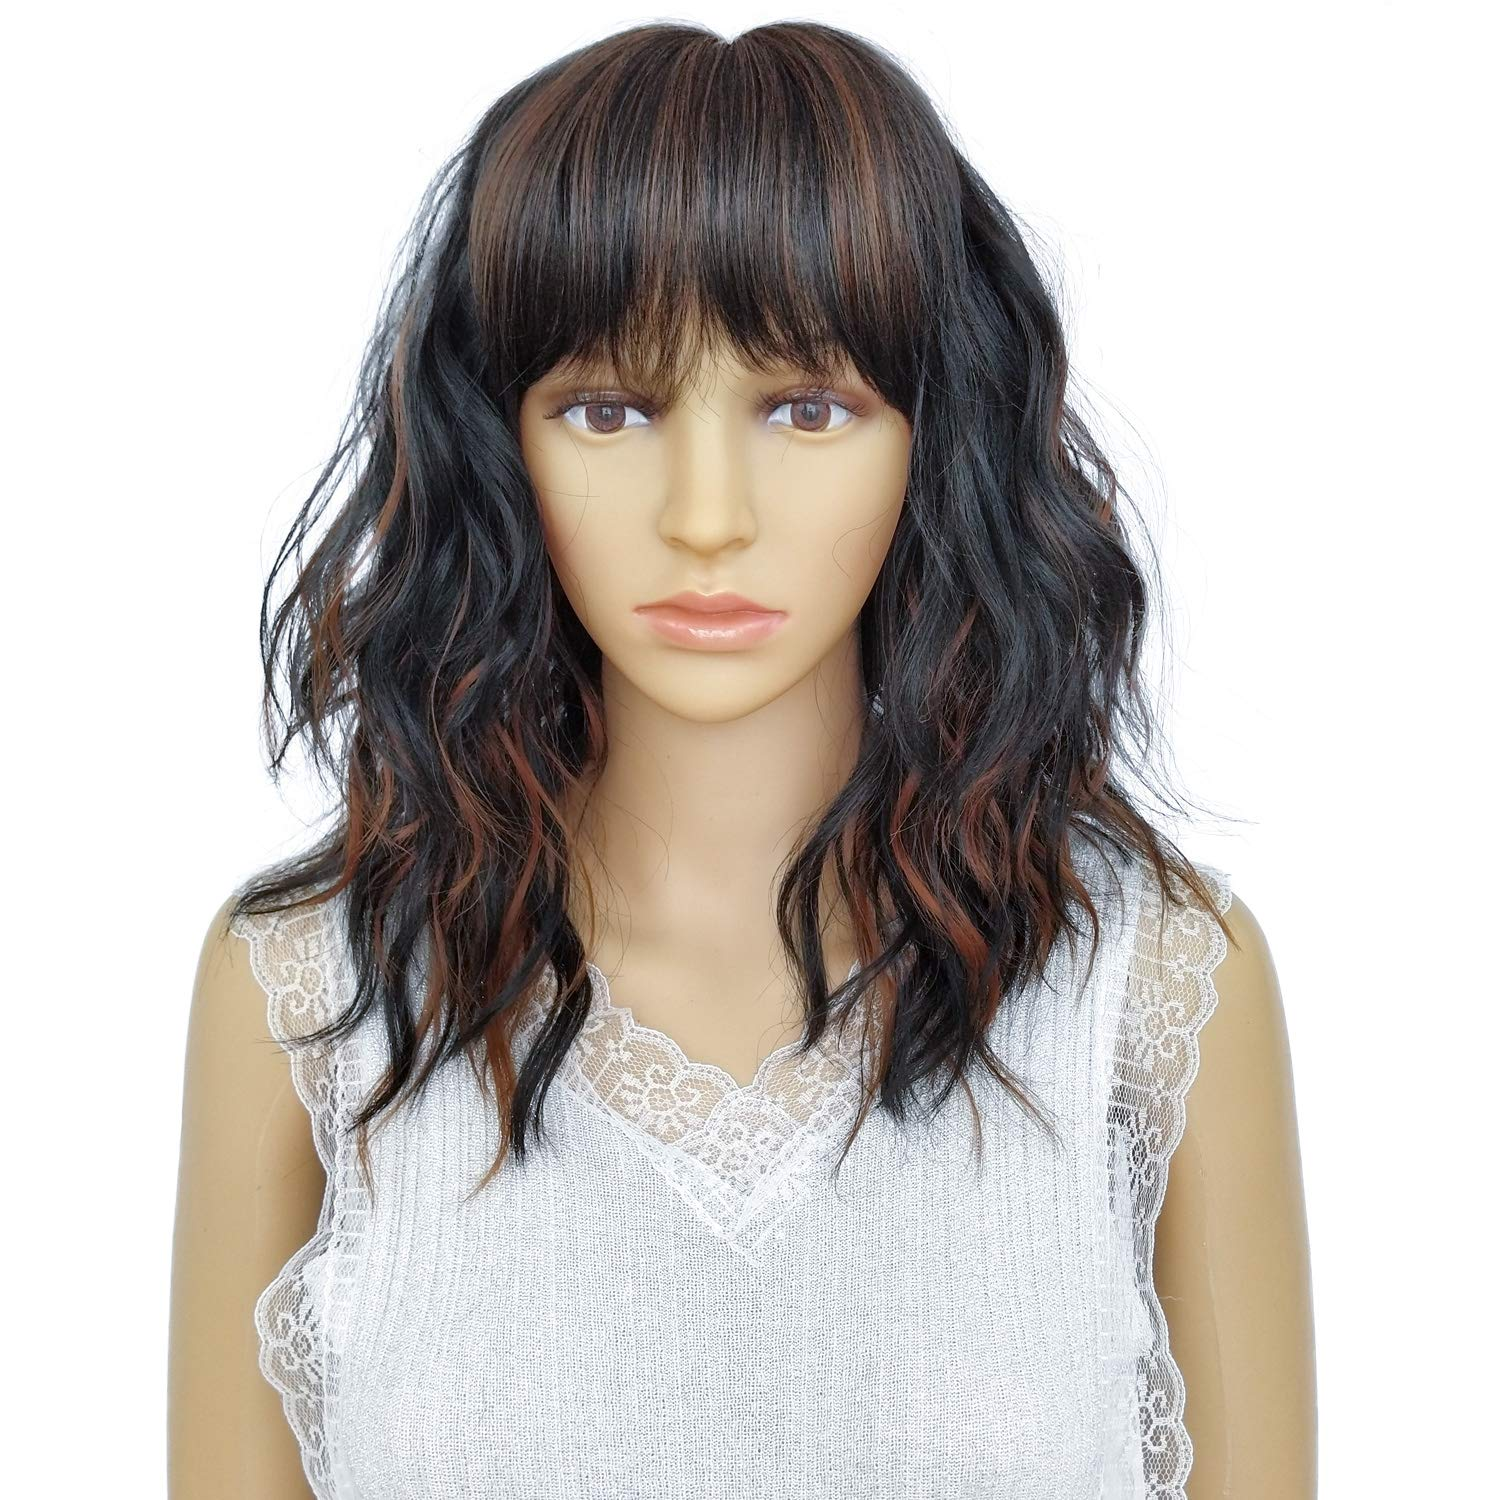 TANRAIN Wig female Short, Short big wave Synthetic wigs Natural lifelike Heat-resistant man-made fibre Party costume party All code A variety of colors are available wig for women (Dark Black mix Brown)